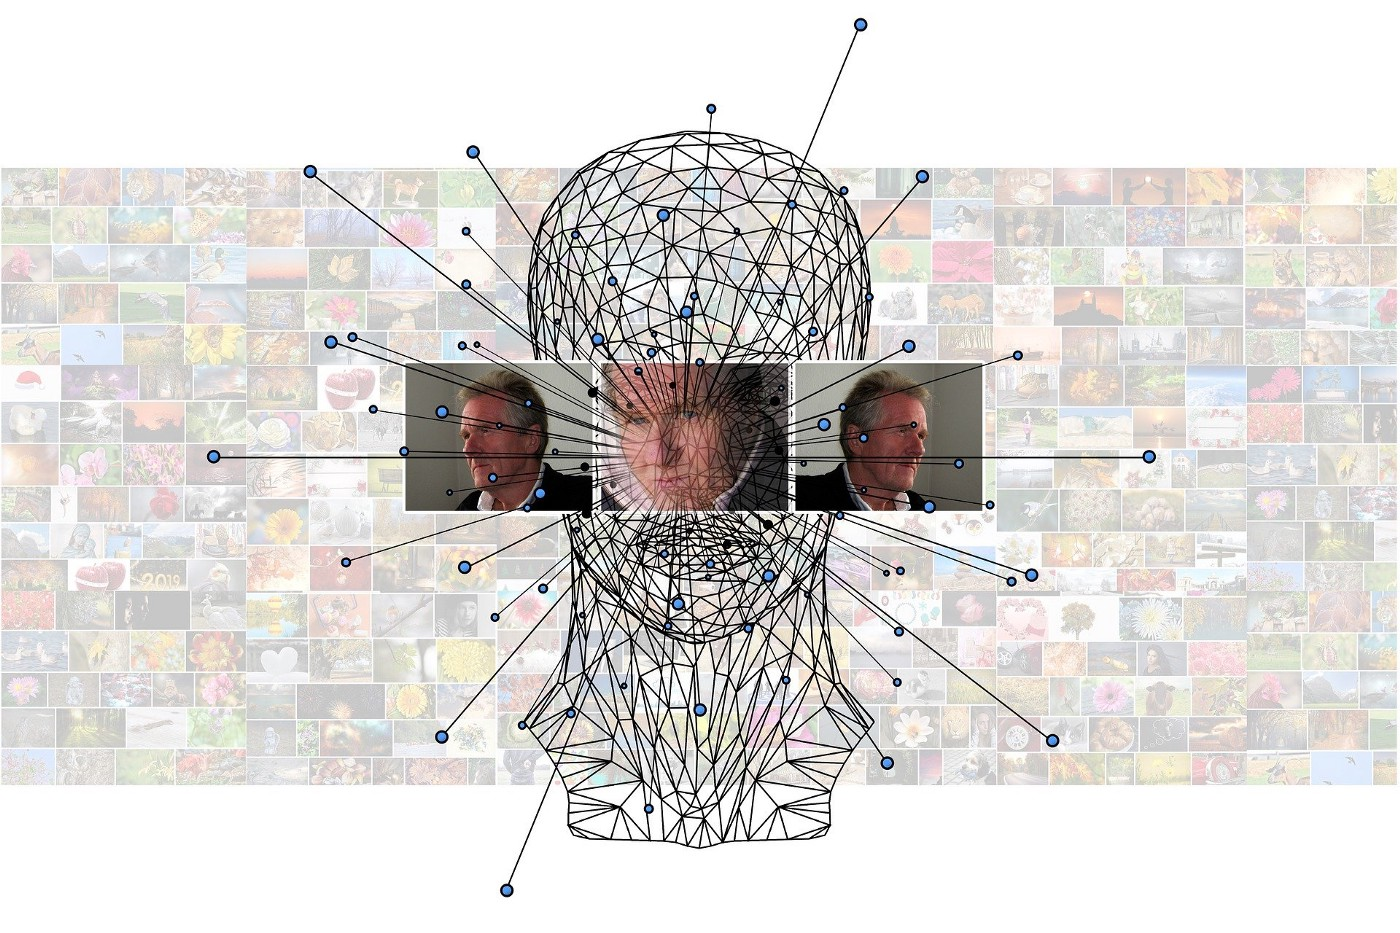 Machine learning image, with directional faces, head diagram clipart, against transparent people montage.